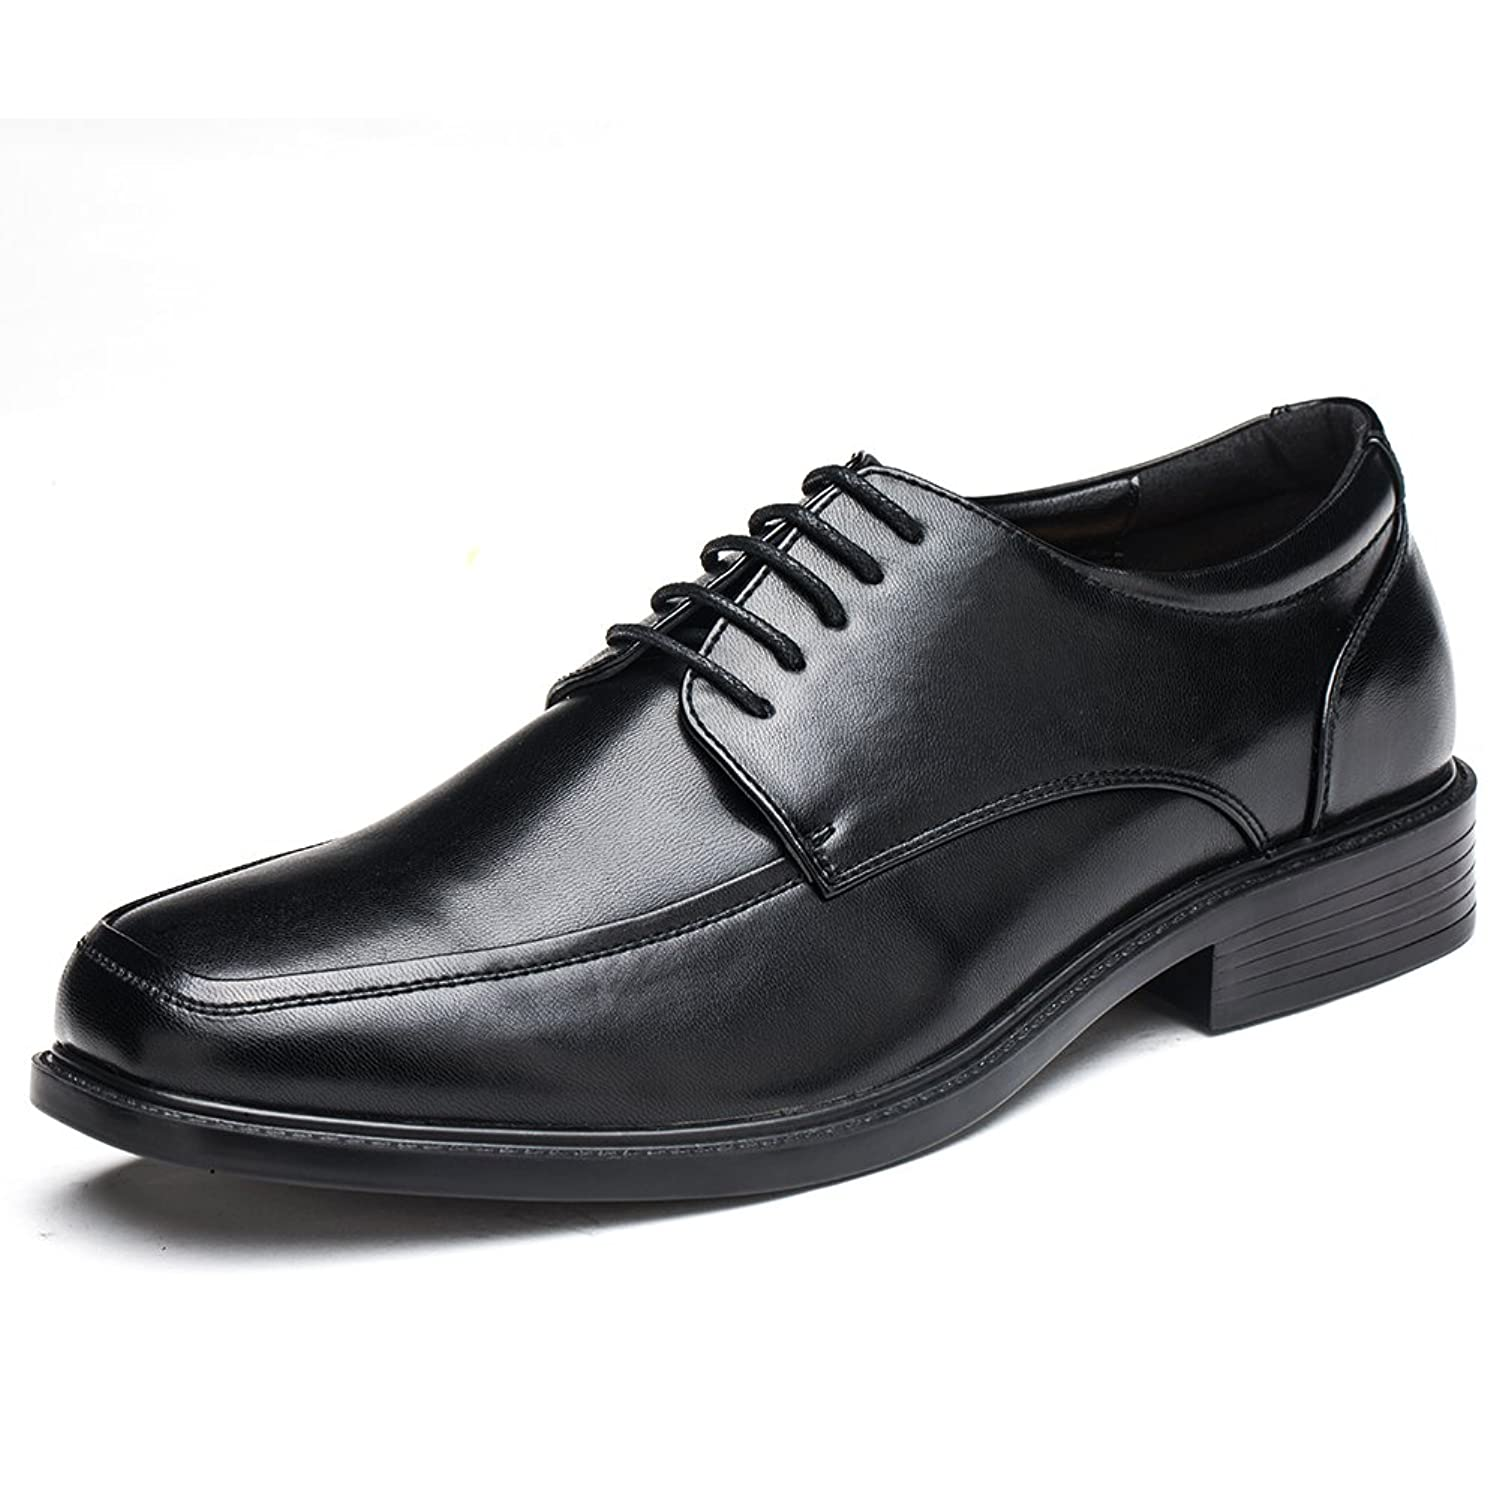 Golaiman Men's Dress Shoes Formal Oxfords by Golaiman